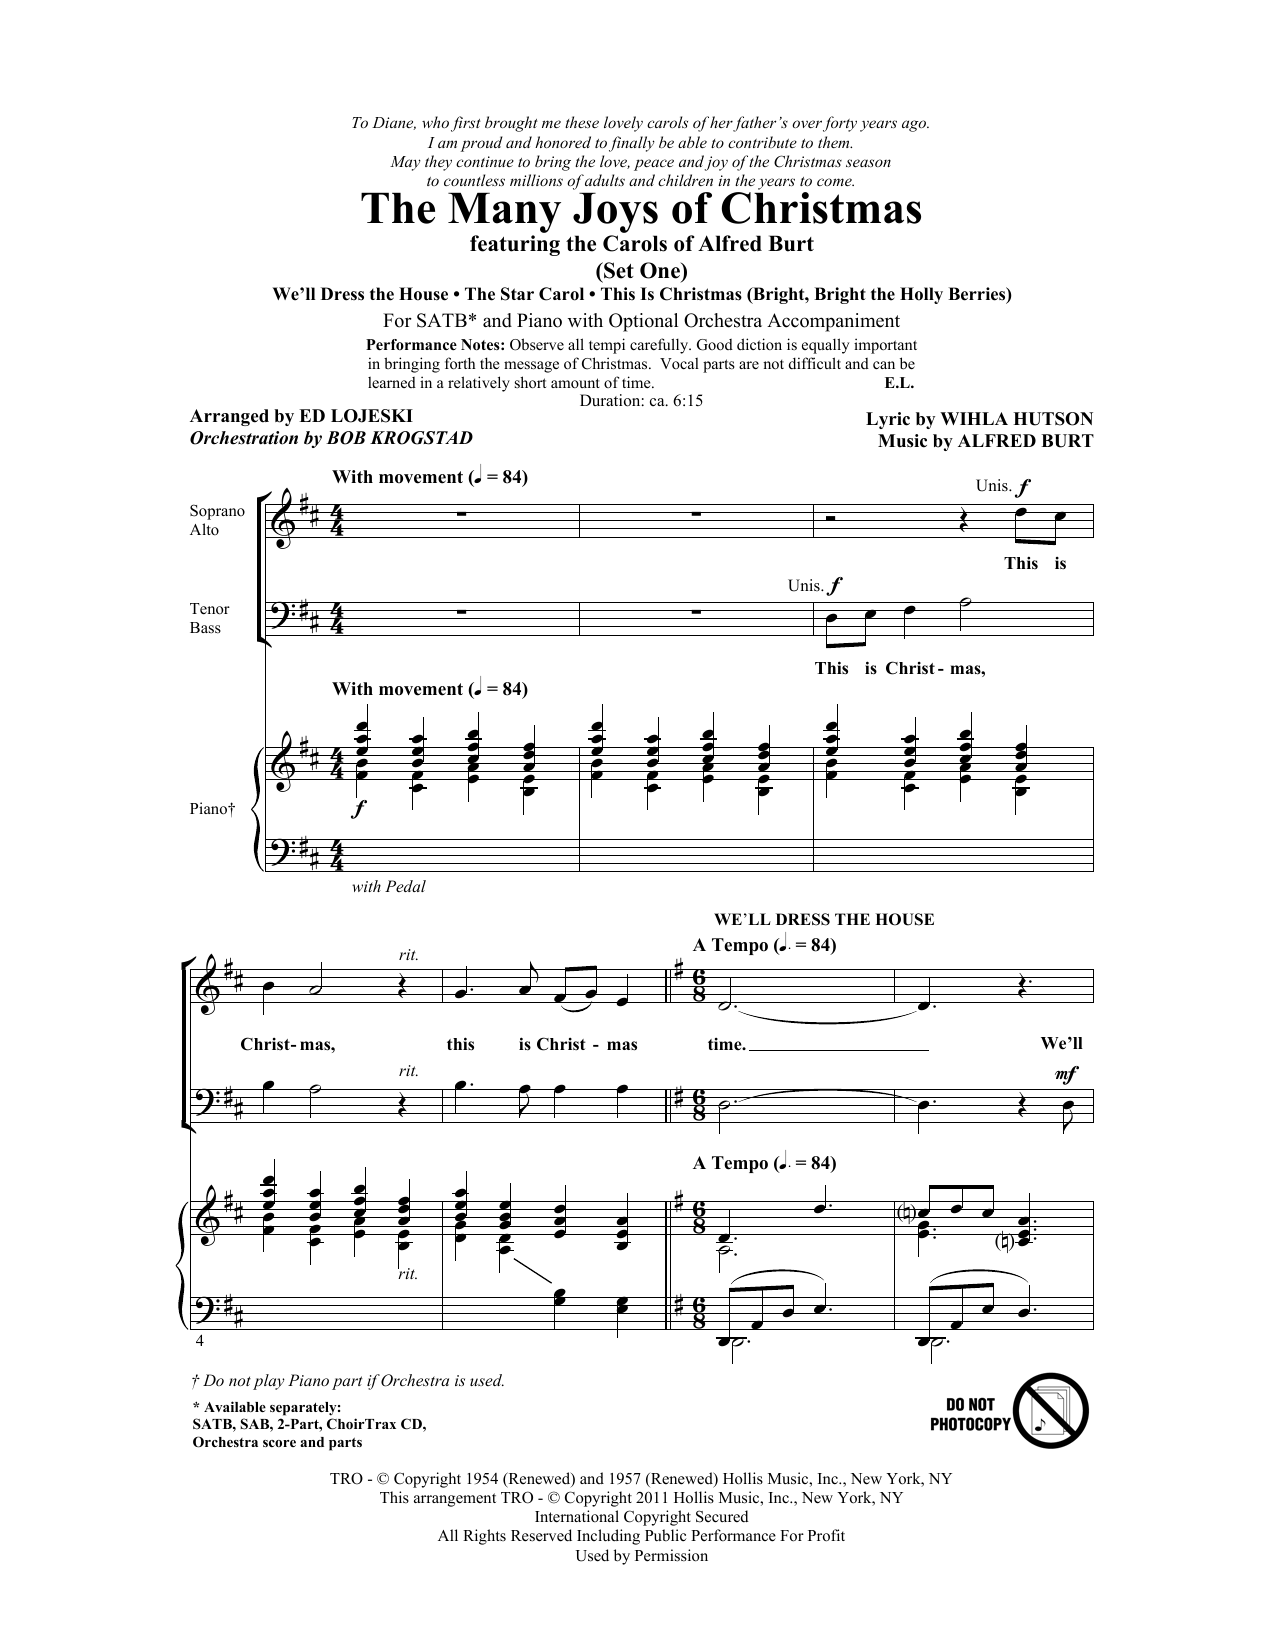 Ed Lojeski The Many Joys Of Christmas (featuring The Carols of Alfred Burt) Set 1 sheet music notes and chords. Download Printable PDF.